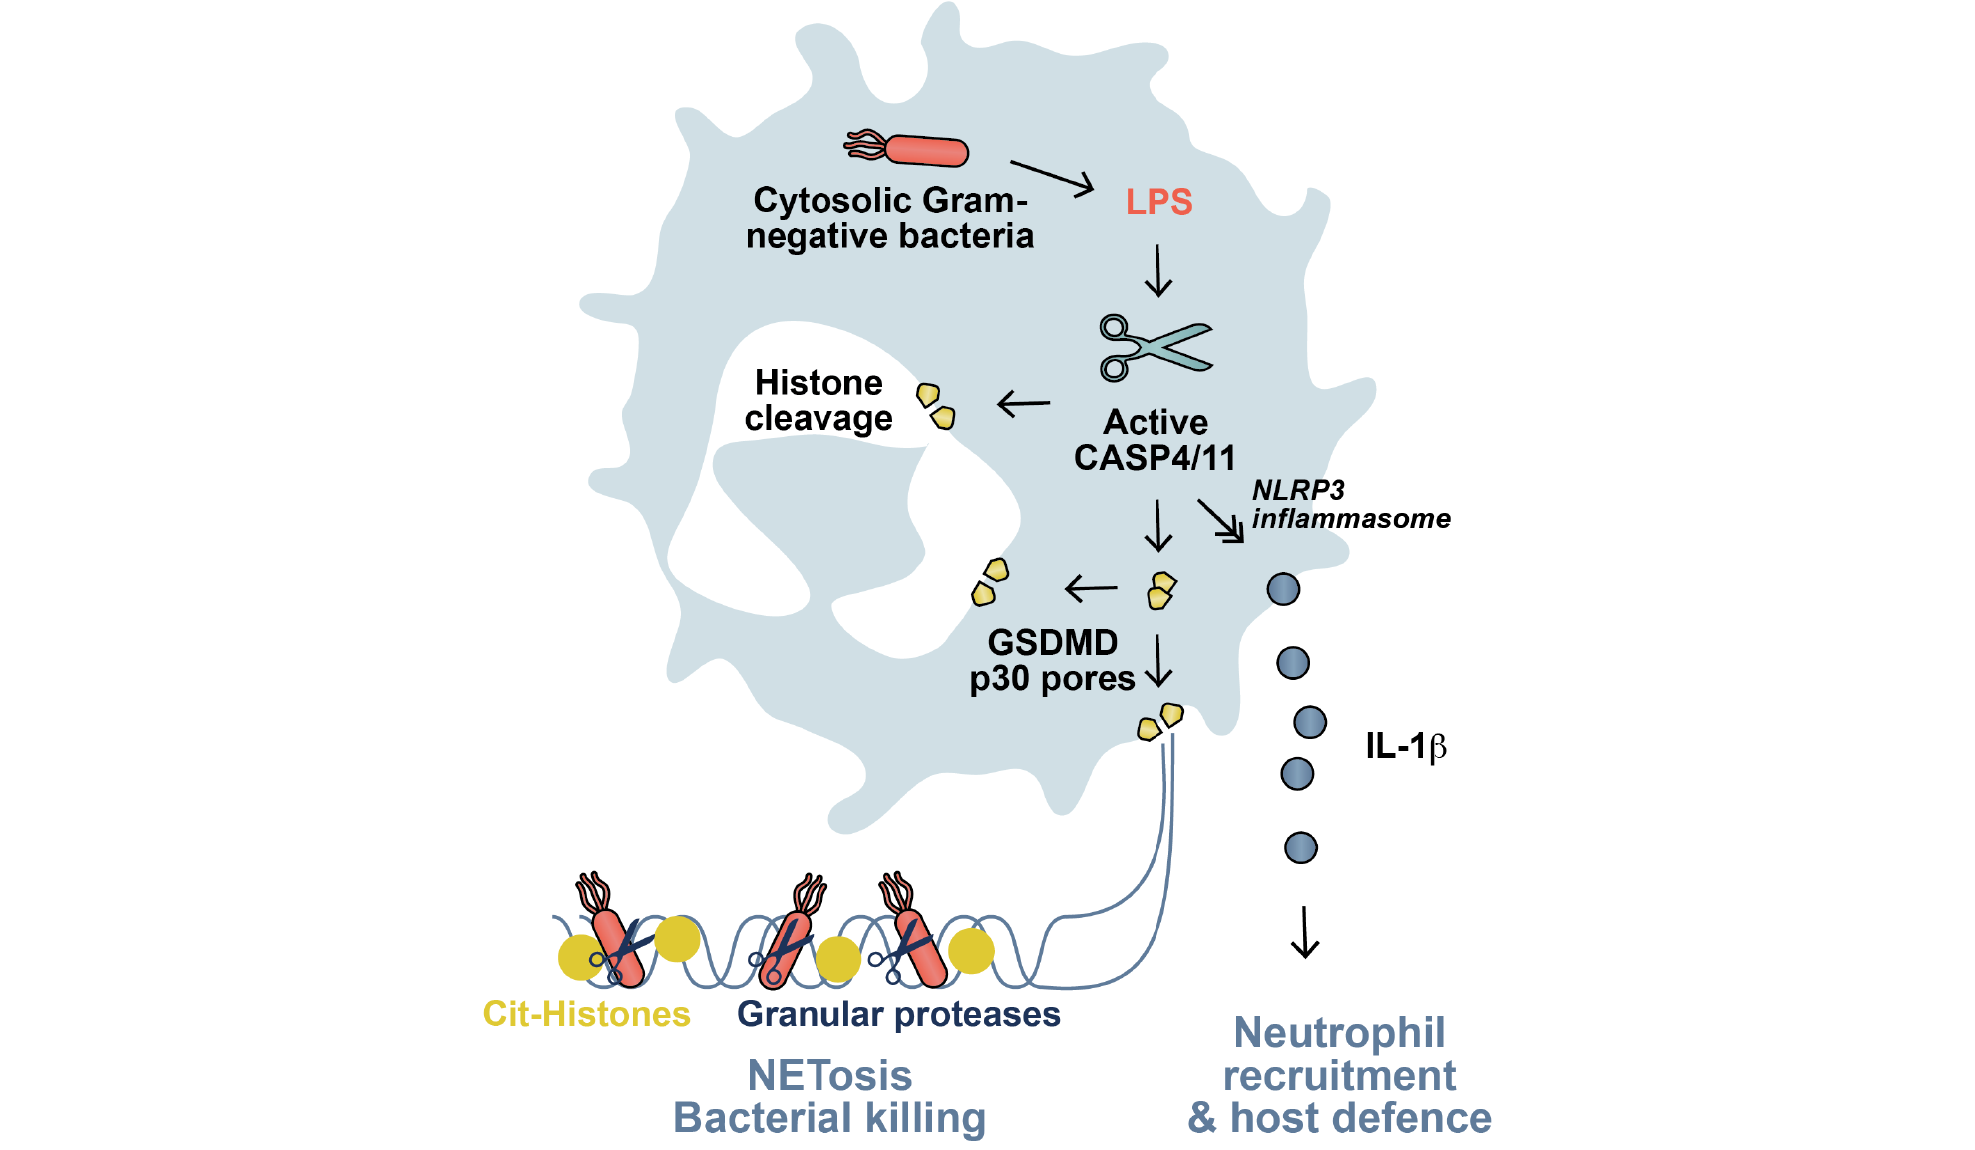 NET, NETosis, non-canonical inflammasome signalling